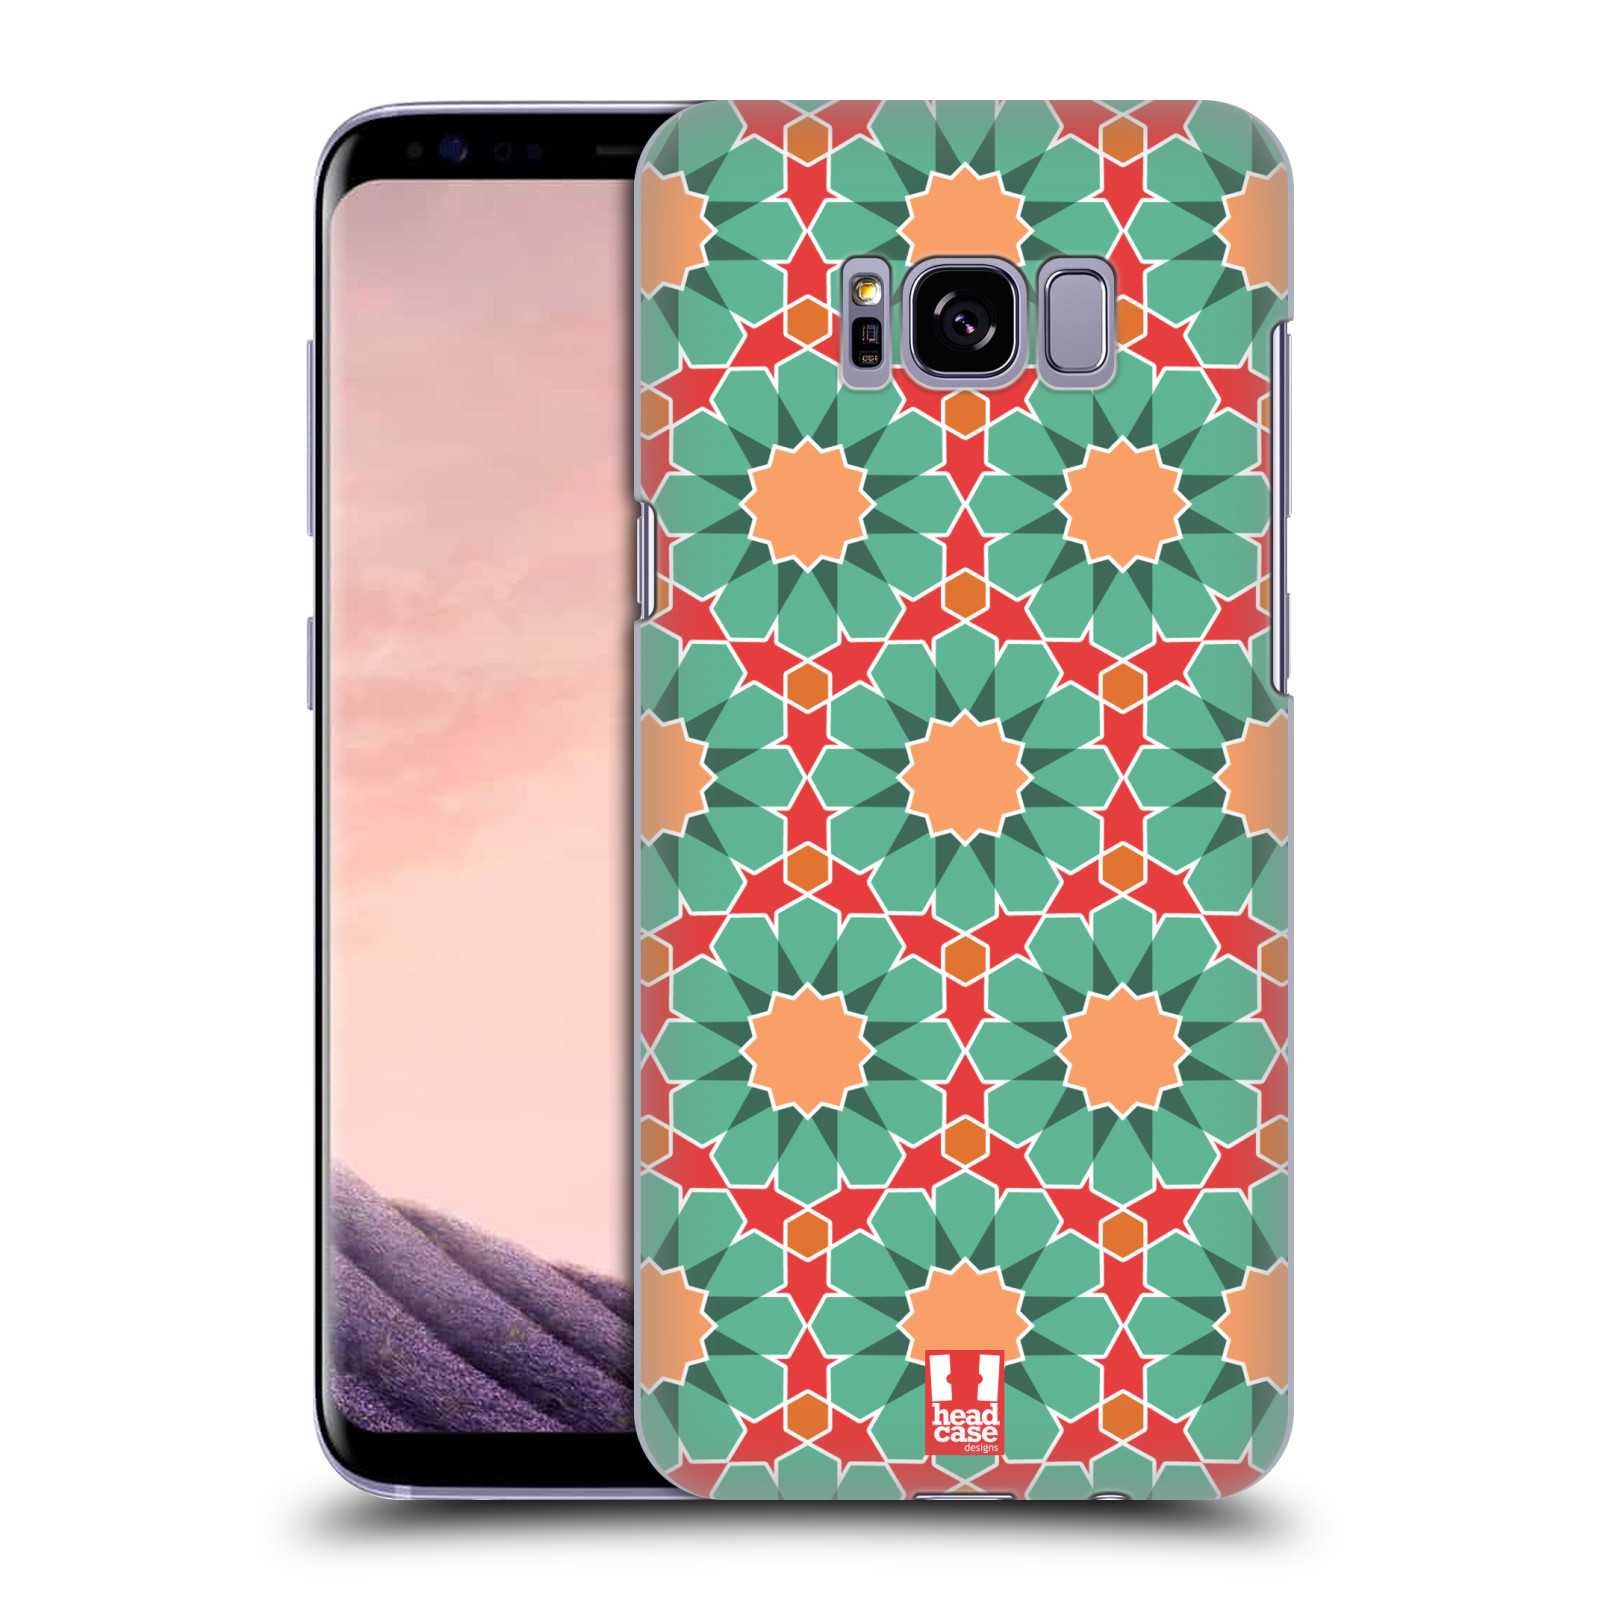 HEAD-CASE-DESIGNS-MOROCCAN-PATTERNS-BACK-CASE-FOR-SAMSUNG-GALAXY-S8-S8-PLUS